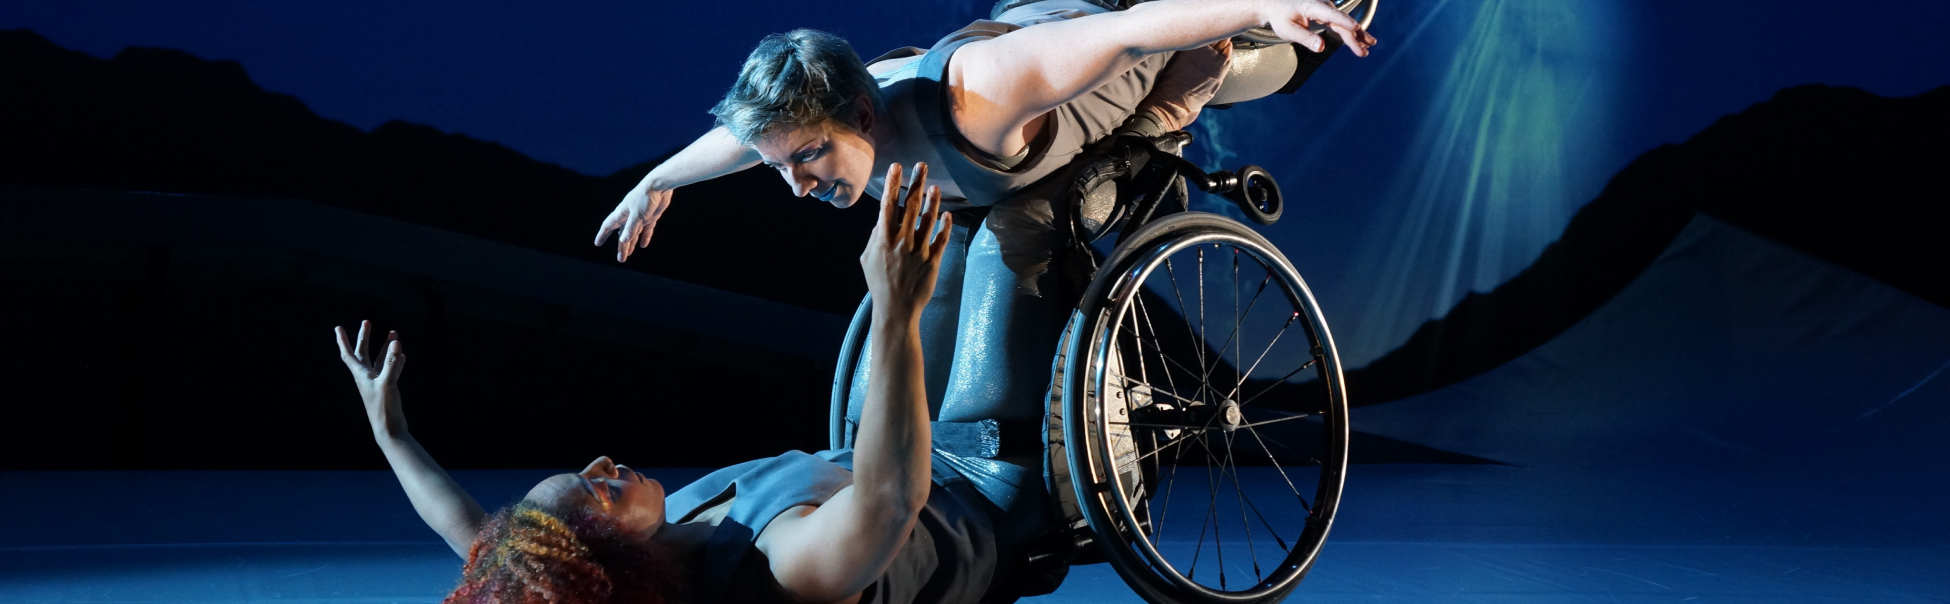 Laurel Lawson, a white woman, is flying in the air as Venus with arms spread wide and wheels spinning, supported by Alice Sheppard. Alice, a light-skinned Black woman, is lifting from the ground below as Andromeda.